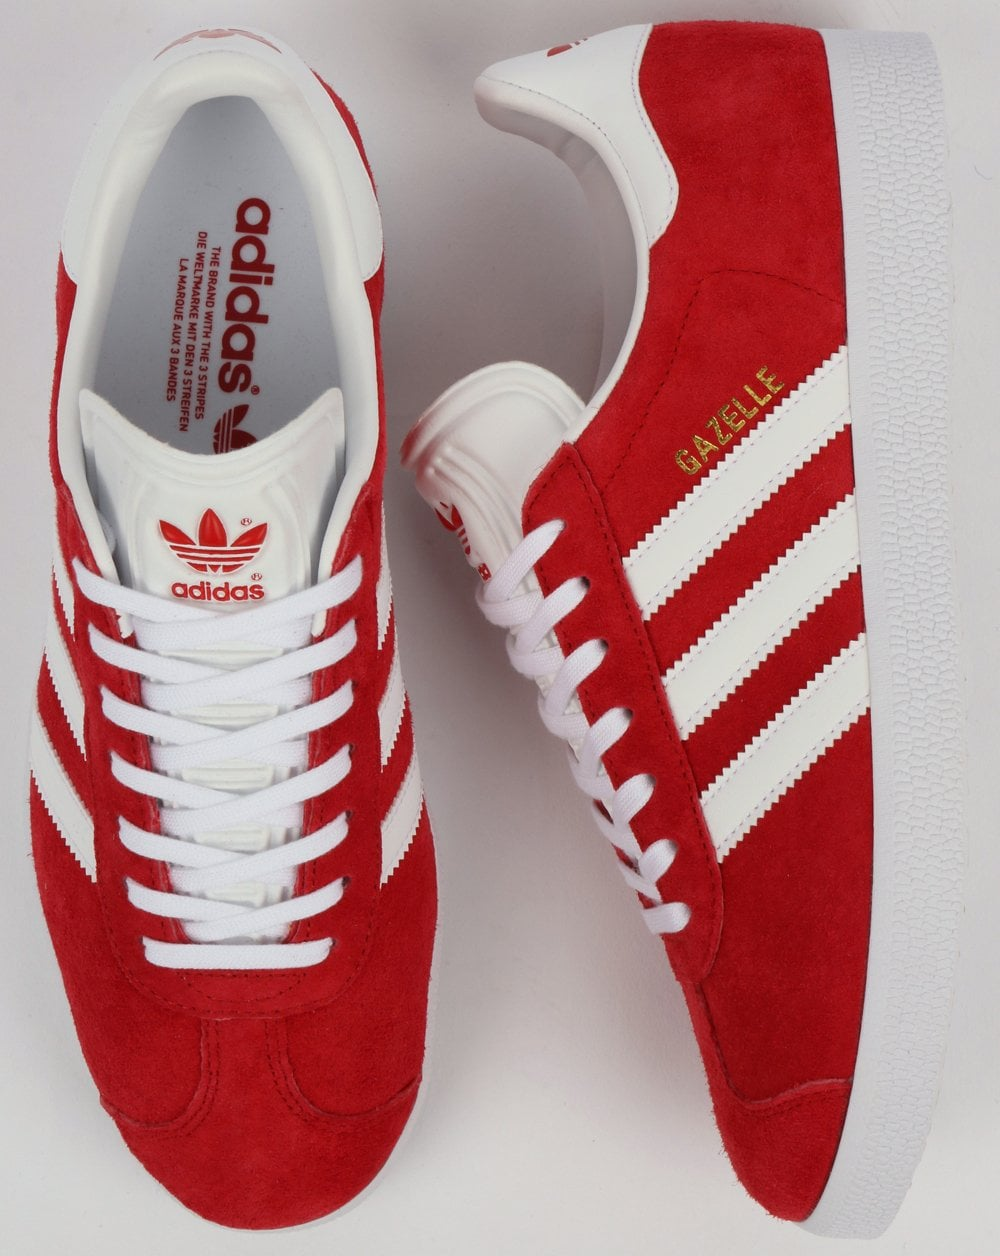 new arrival e9ba0 e617d Adidas Gazelle Trainers Red White